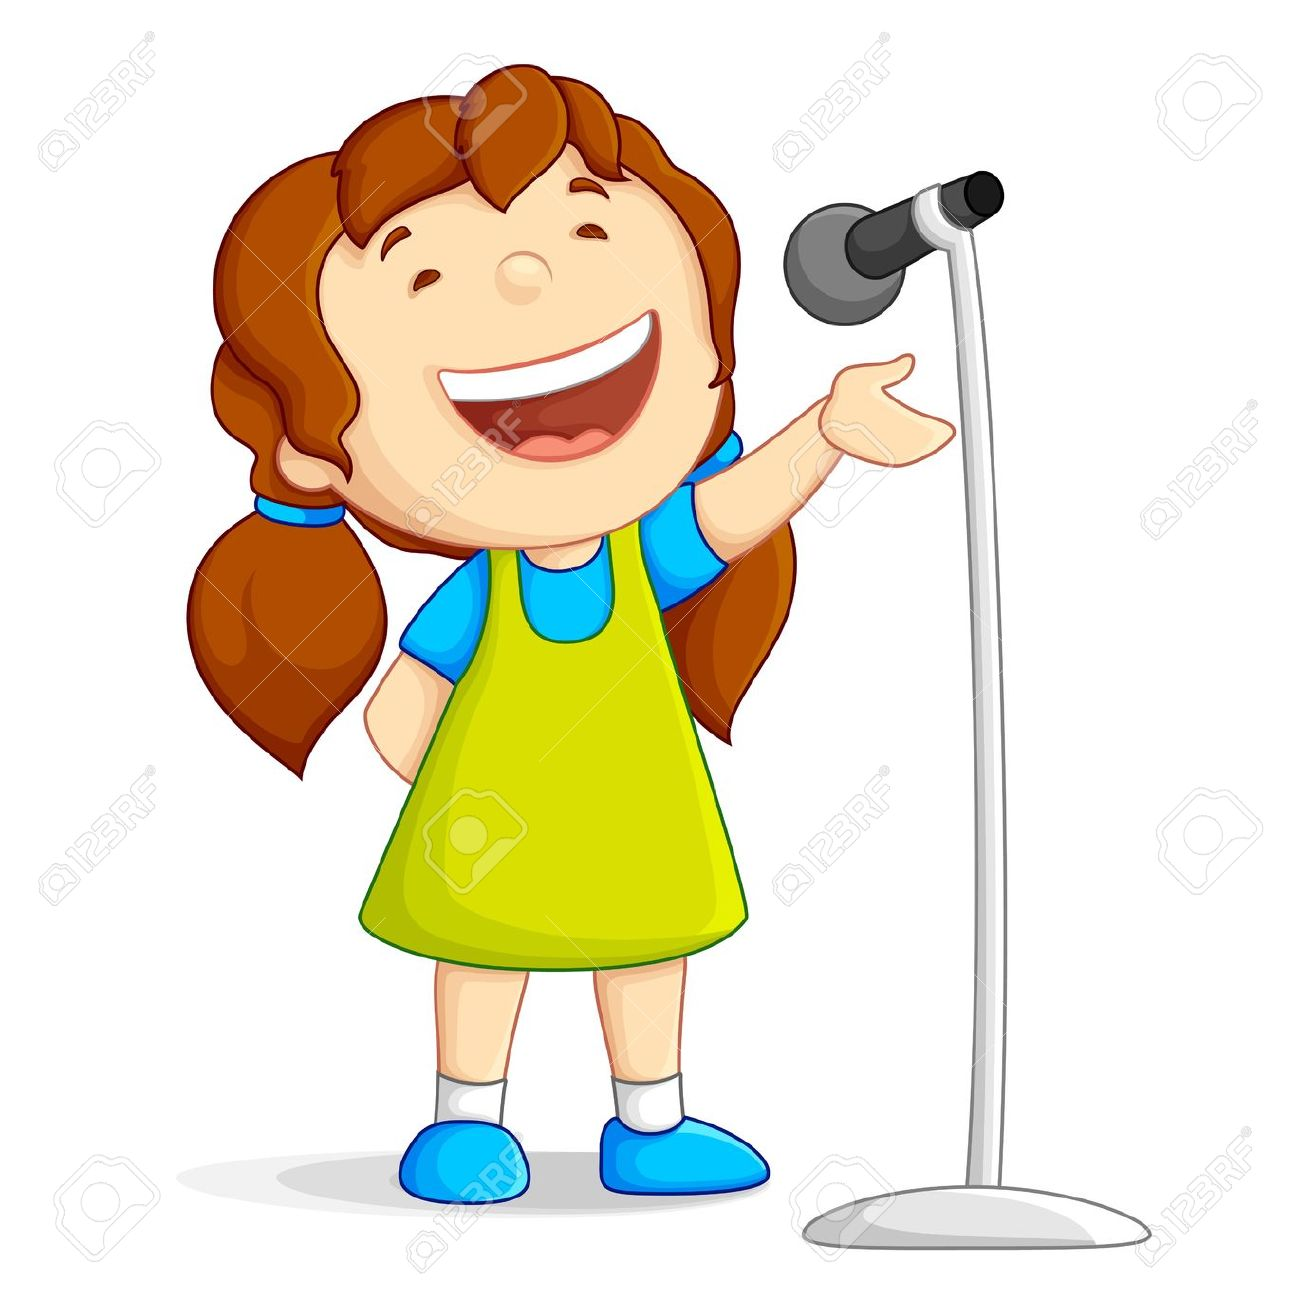 graphic royalty free download  sing clip art. Kid singing clipart.